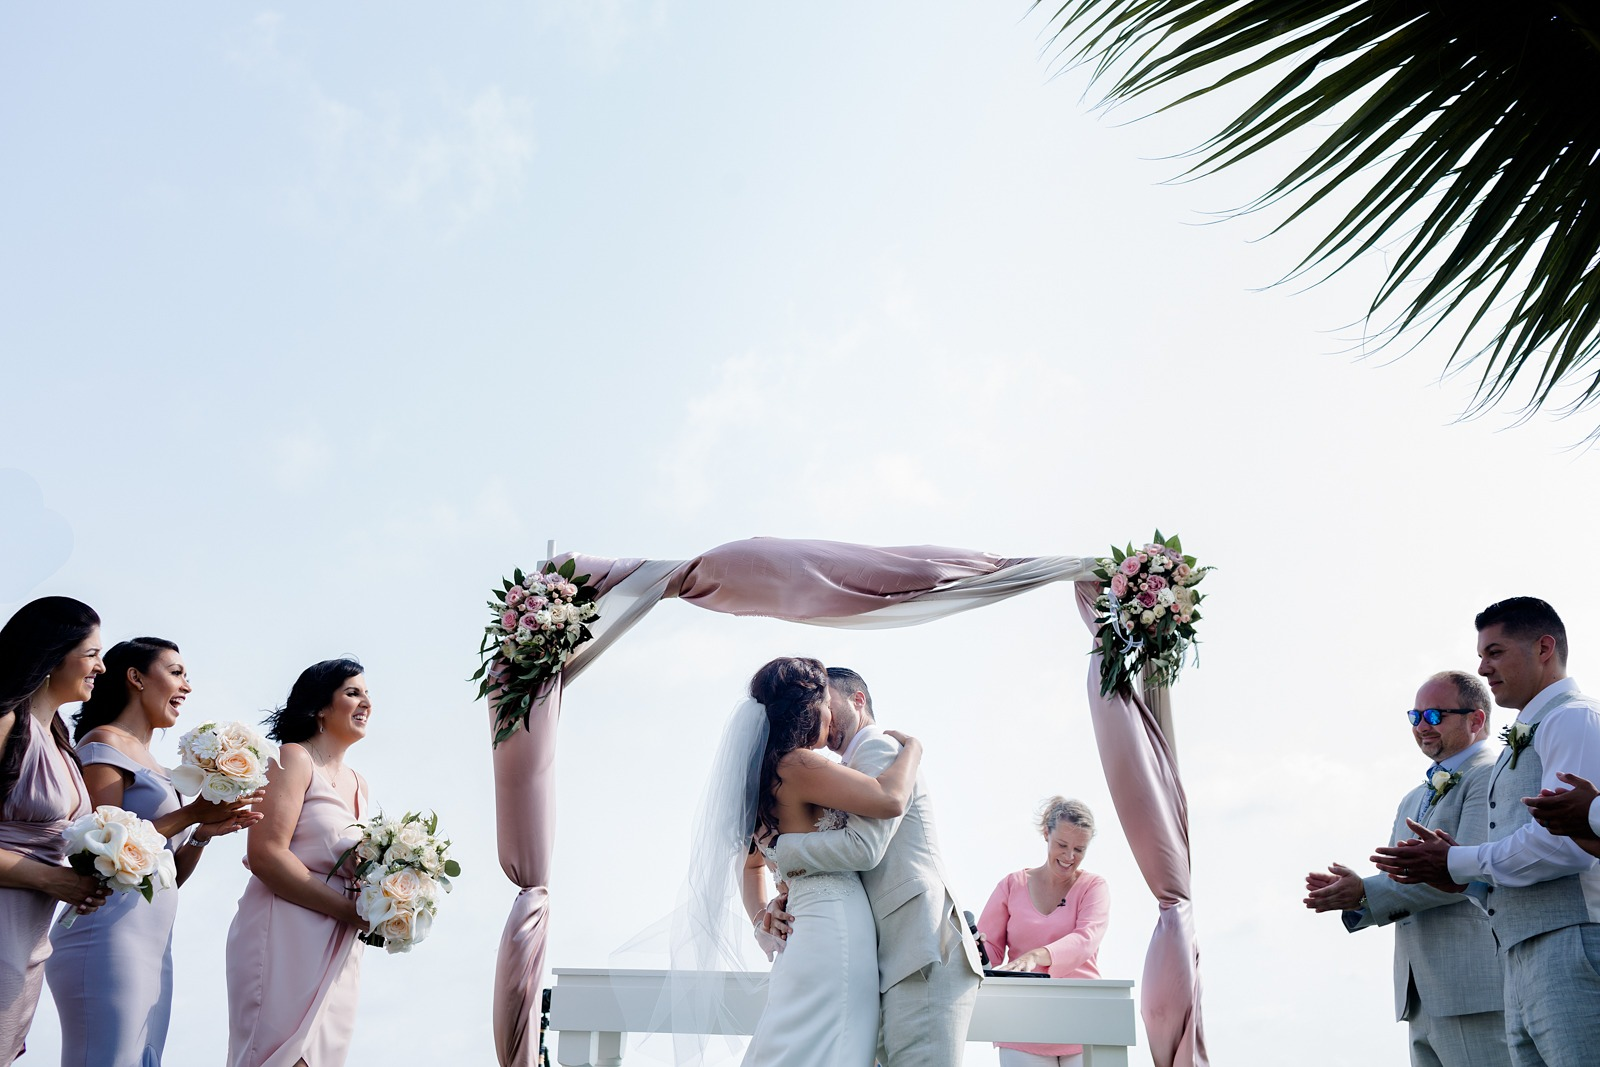 wedding-ceremony-kiss-vallarta-bride-groom-claps-sky-beach wedding